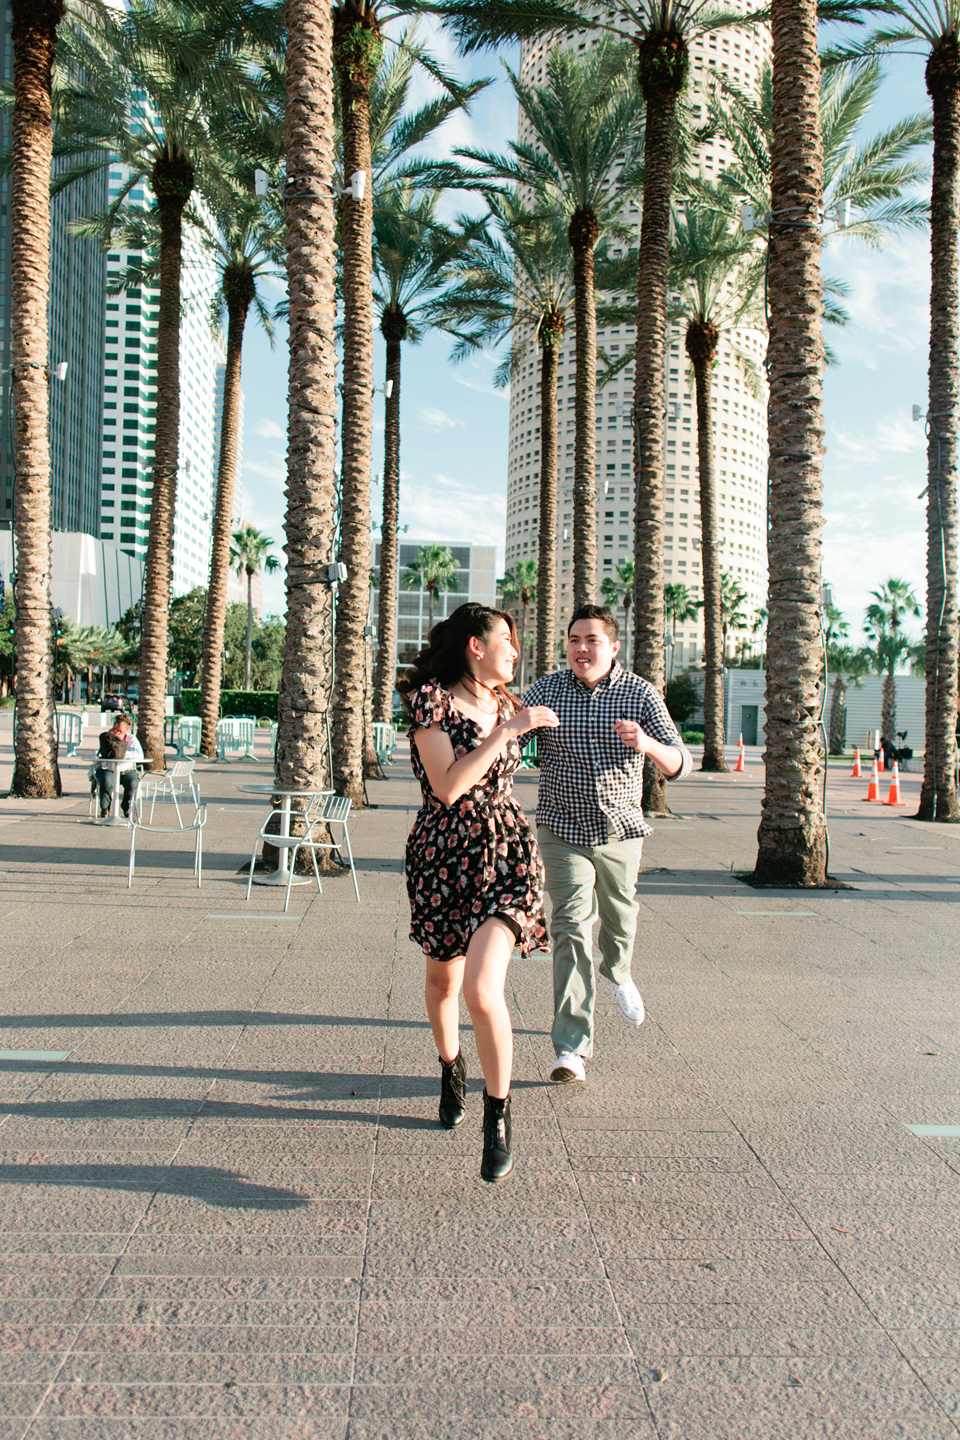 Image of an engaged couple running playfully at Curtis Hixon Waterfront Park.